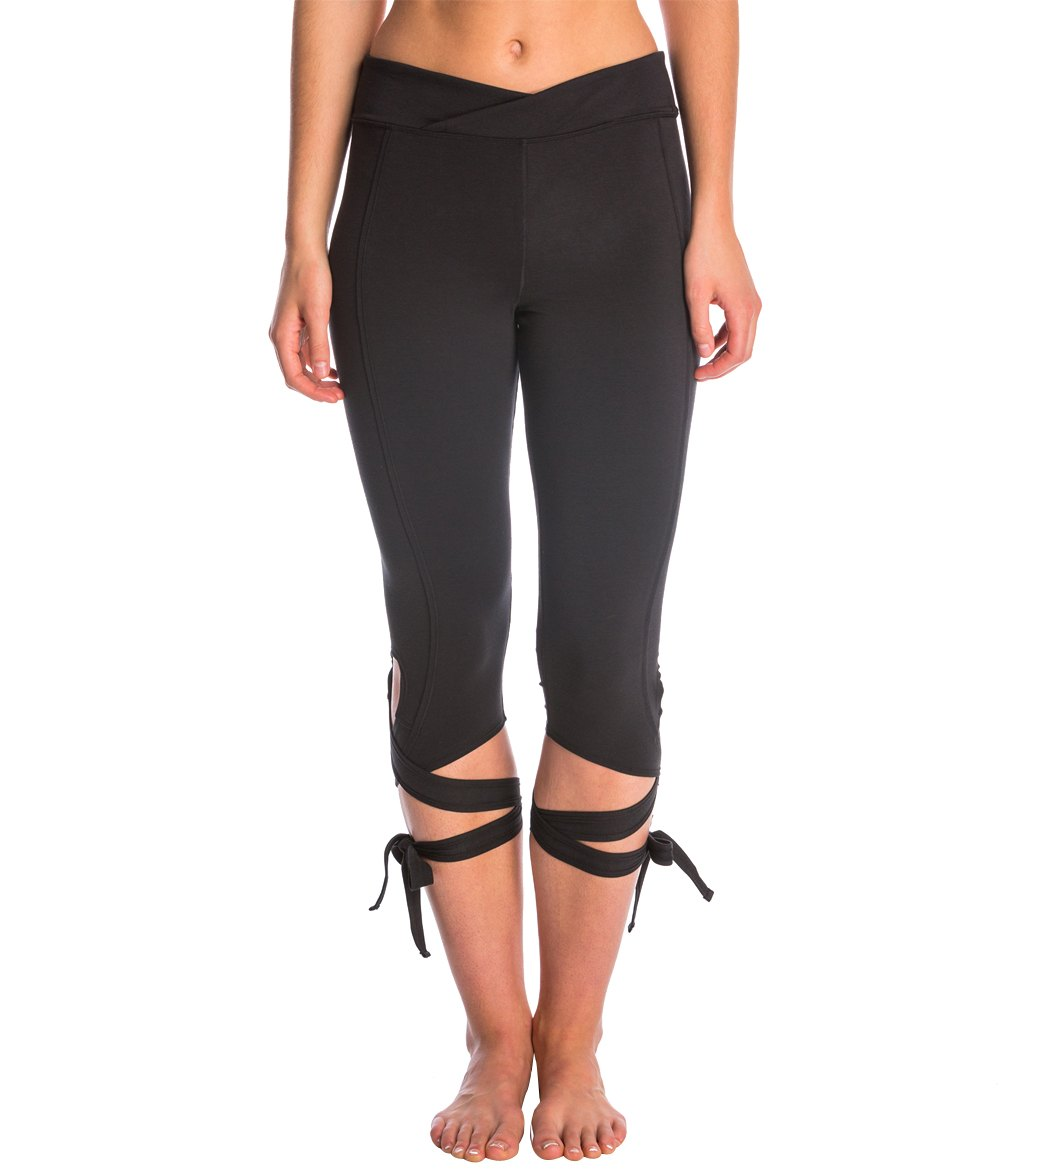 eced3e32547e2 Free People Movement Turnout Yoga Capris at YogaOutlet.com - Free Shipping